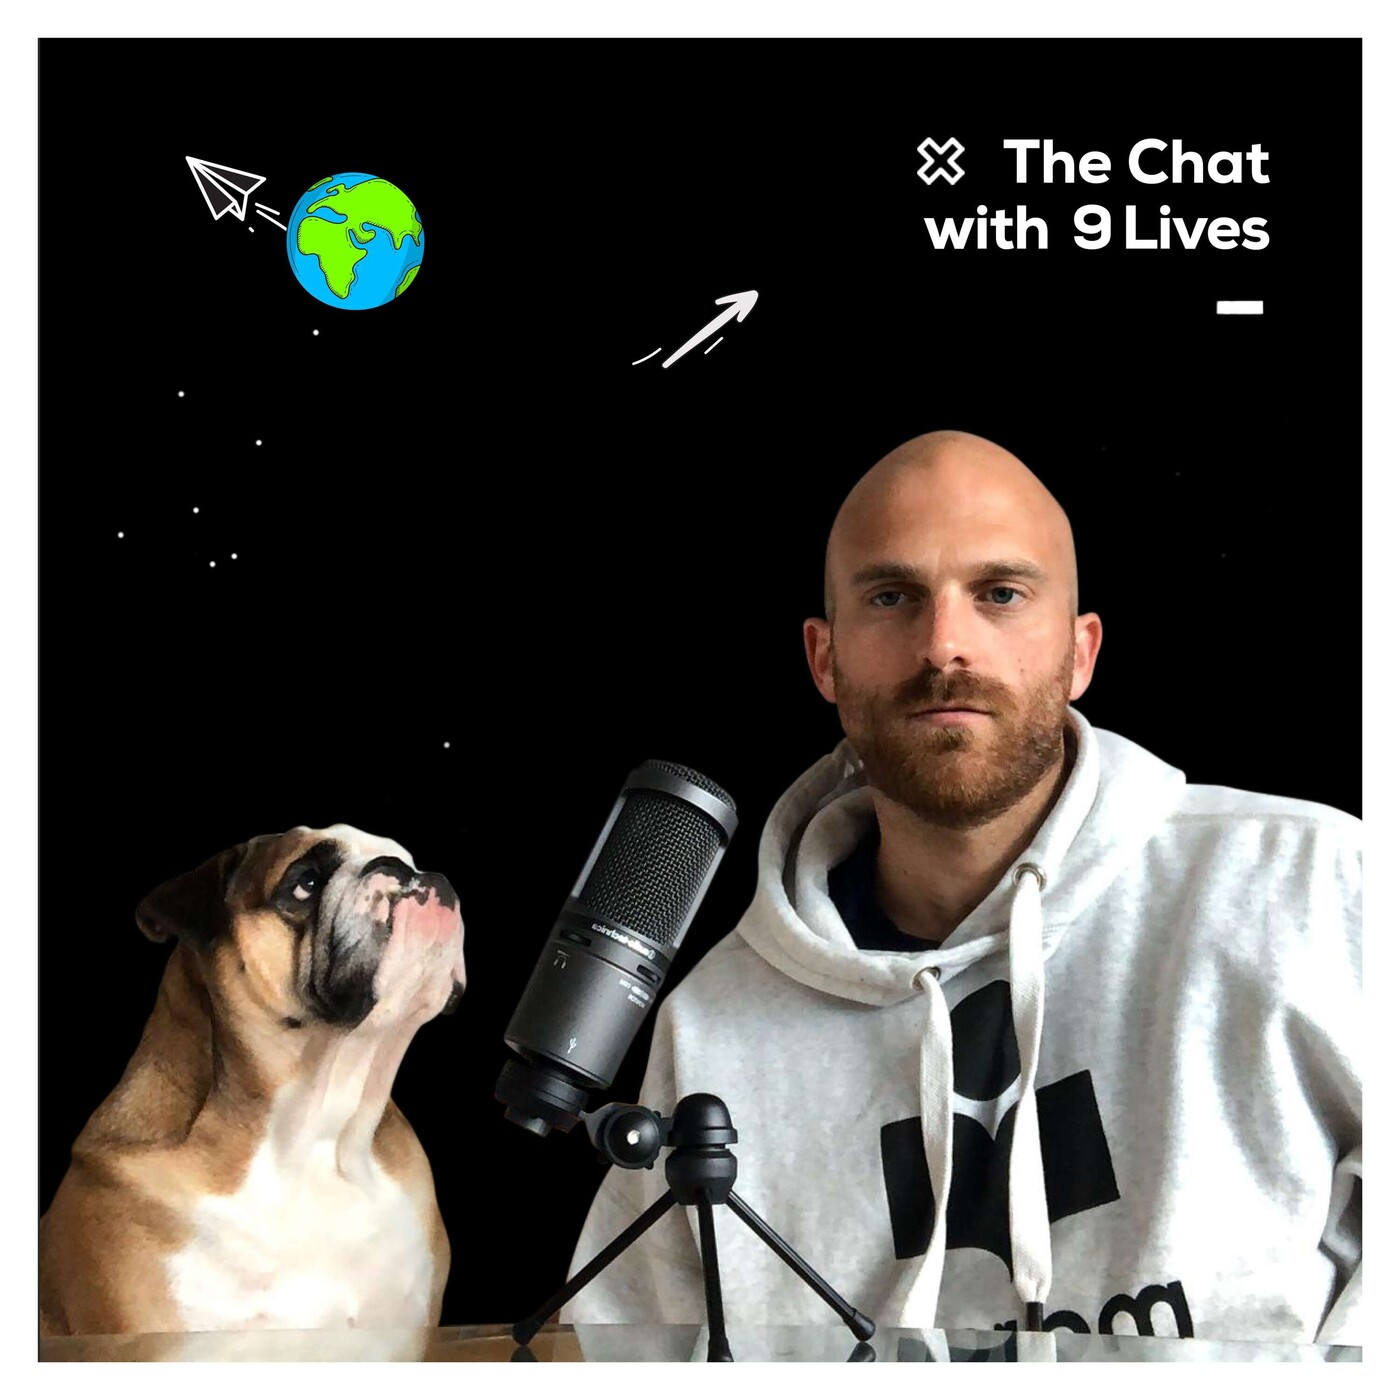 Episode 14 - The Chat with 9 Lives